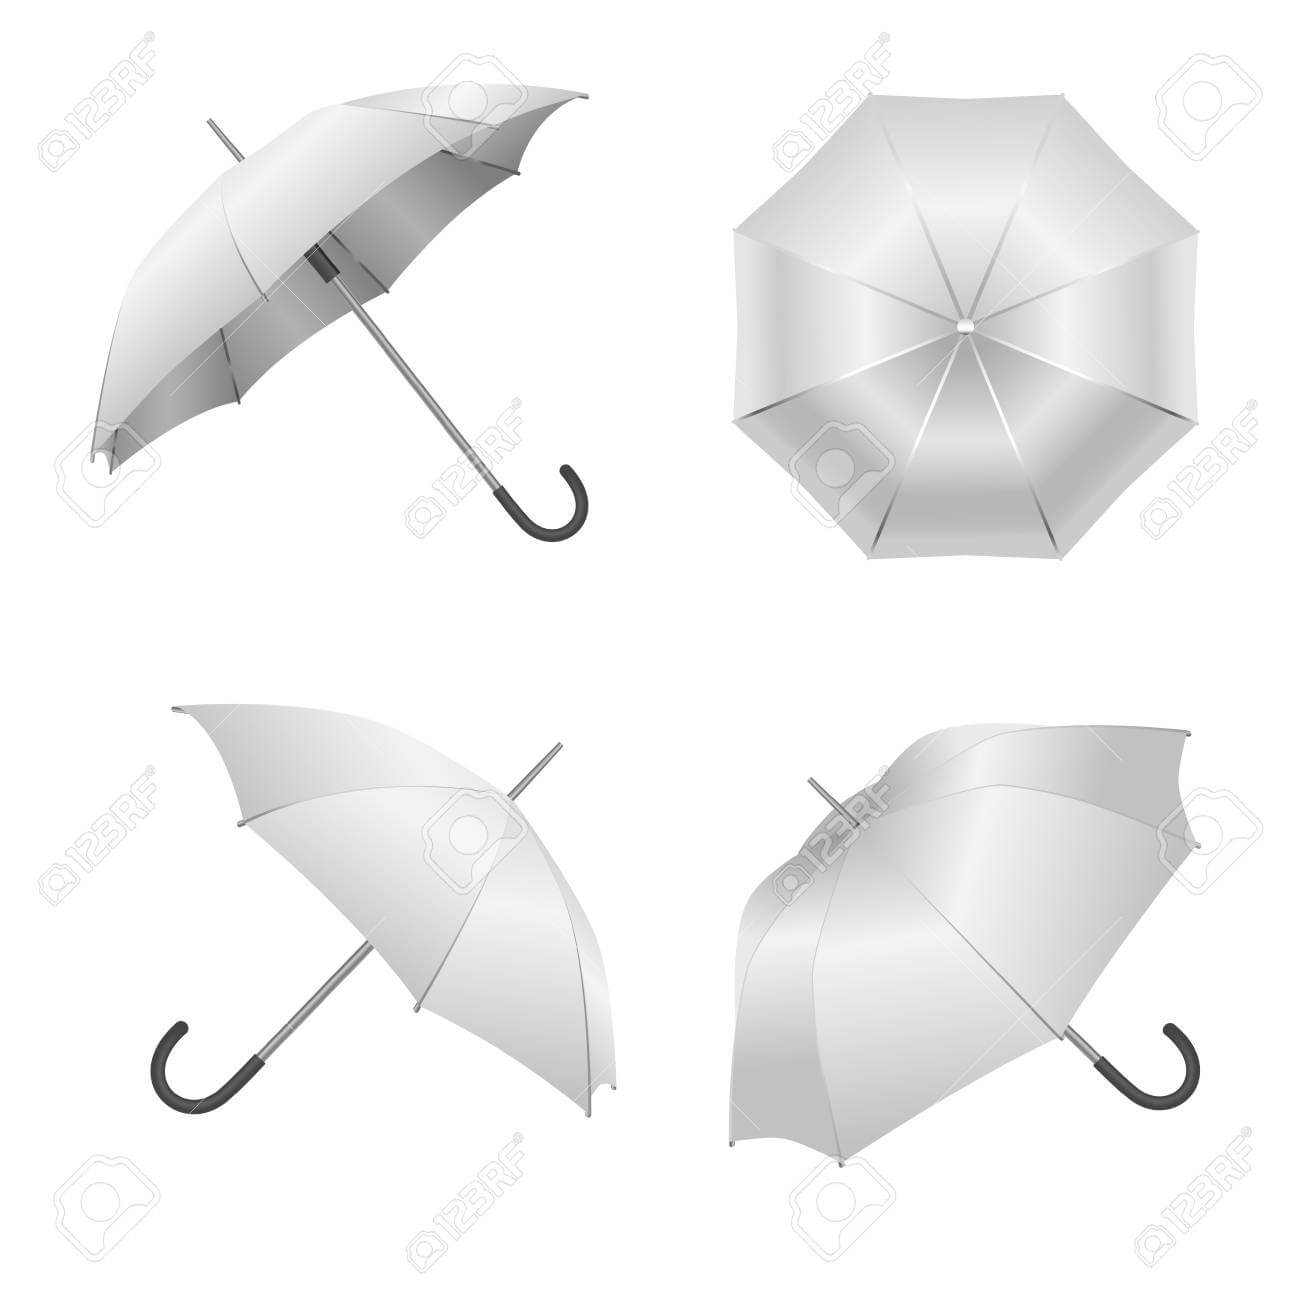 Realistic Detailed 3D White Blank Umbrella Template Mockup Set.. Intended For Blank Umbrella Template